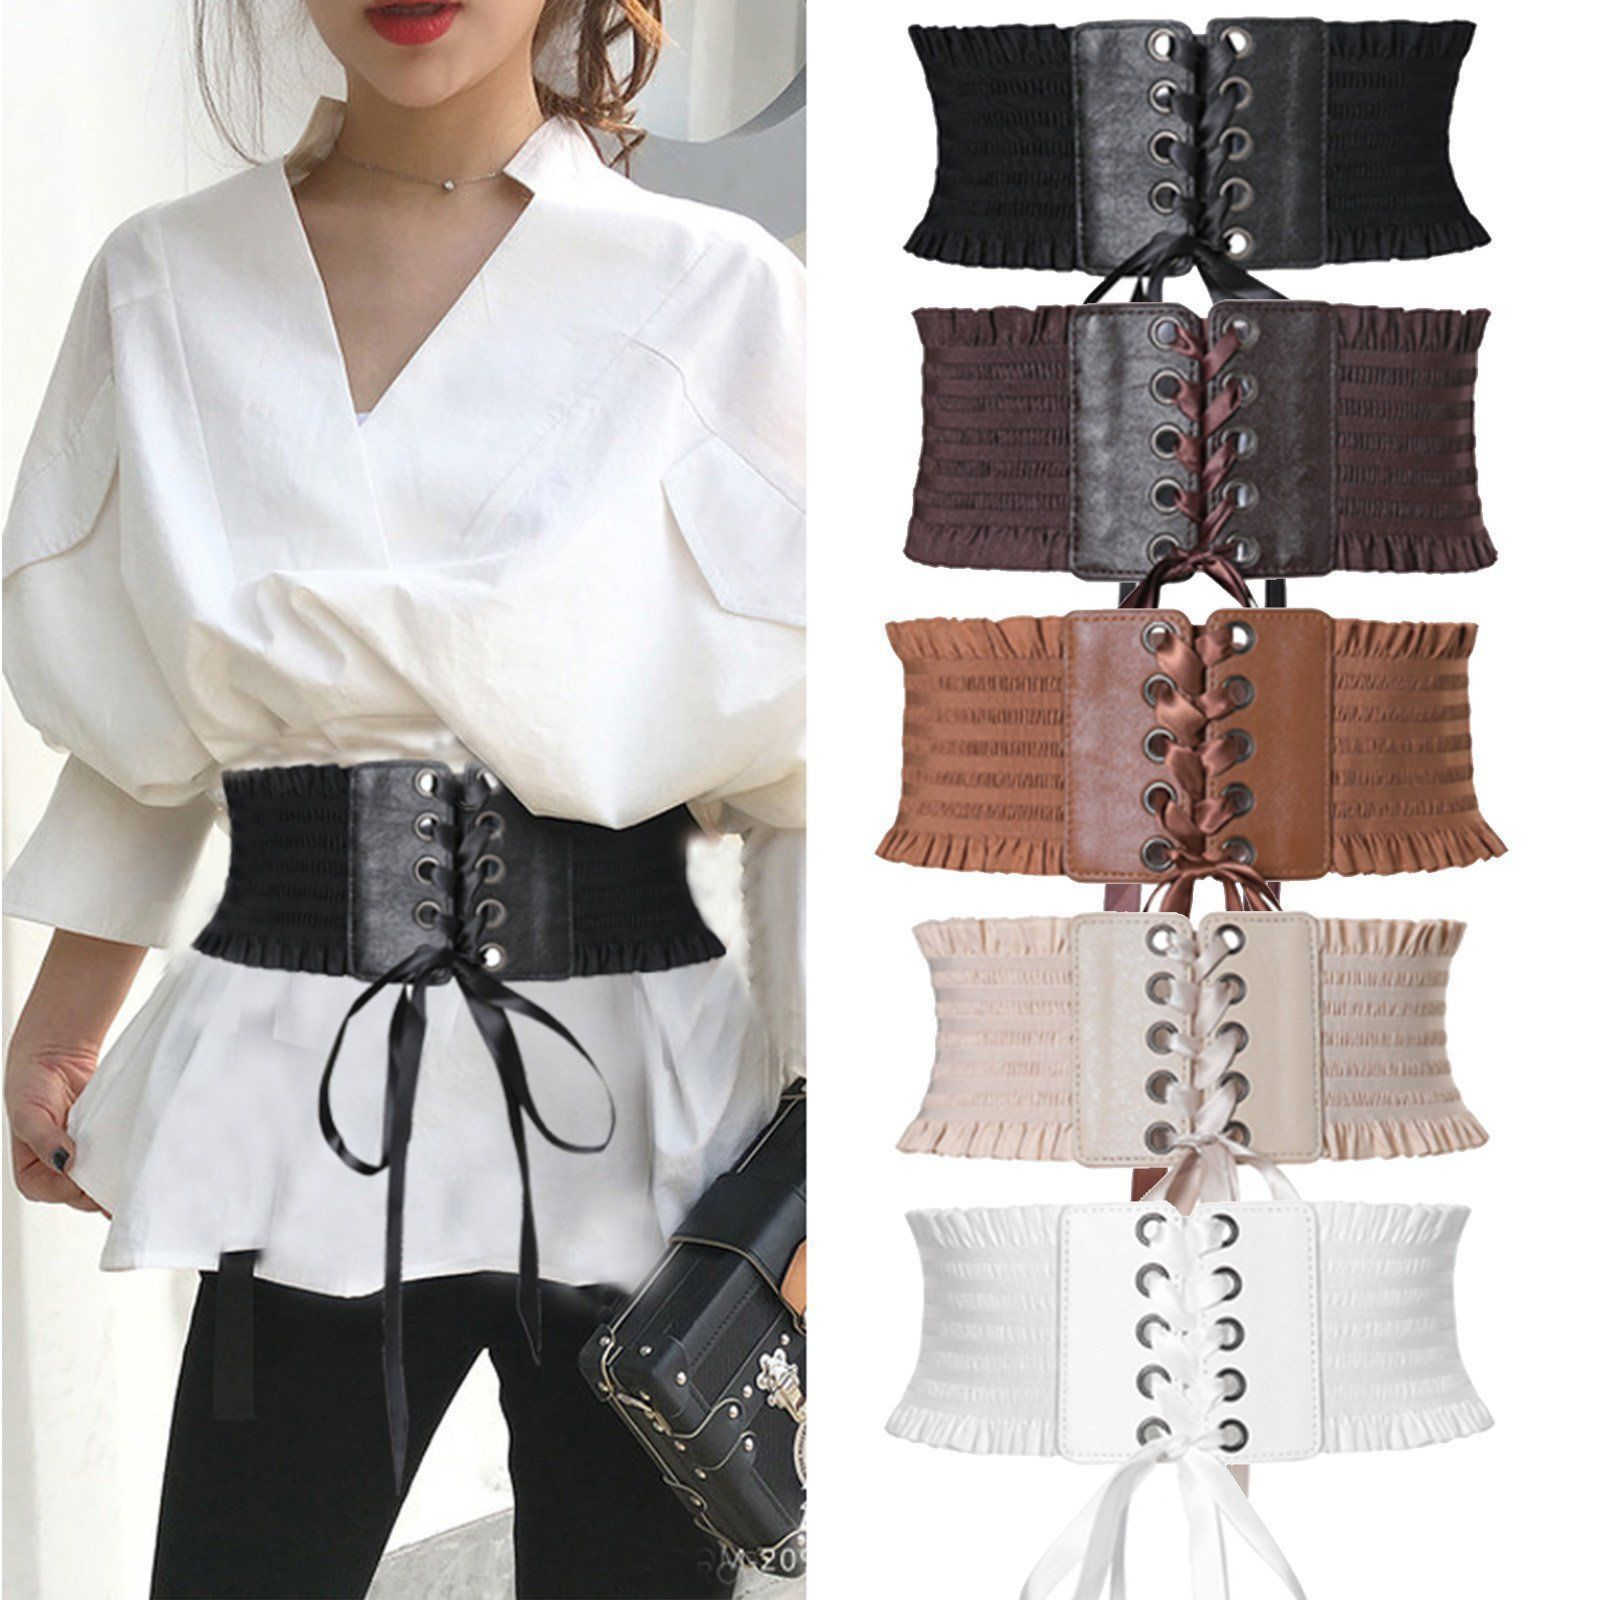 Women Ladies Soft PU Leather Wrap Around Tie Cinch Waist Wide Belt Cummerbund